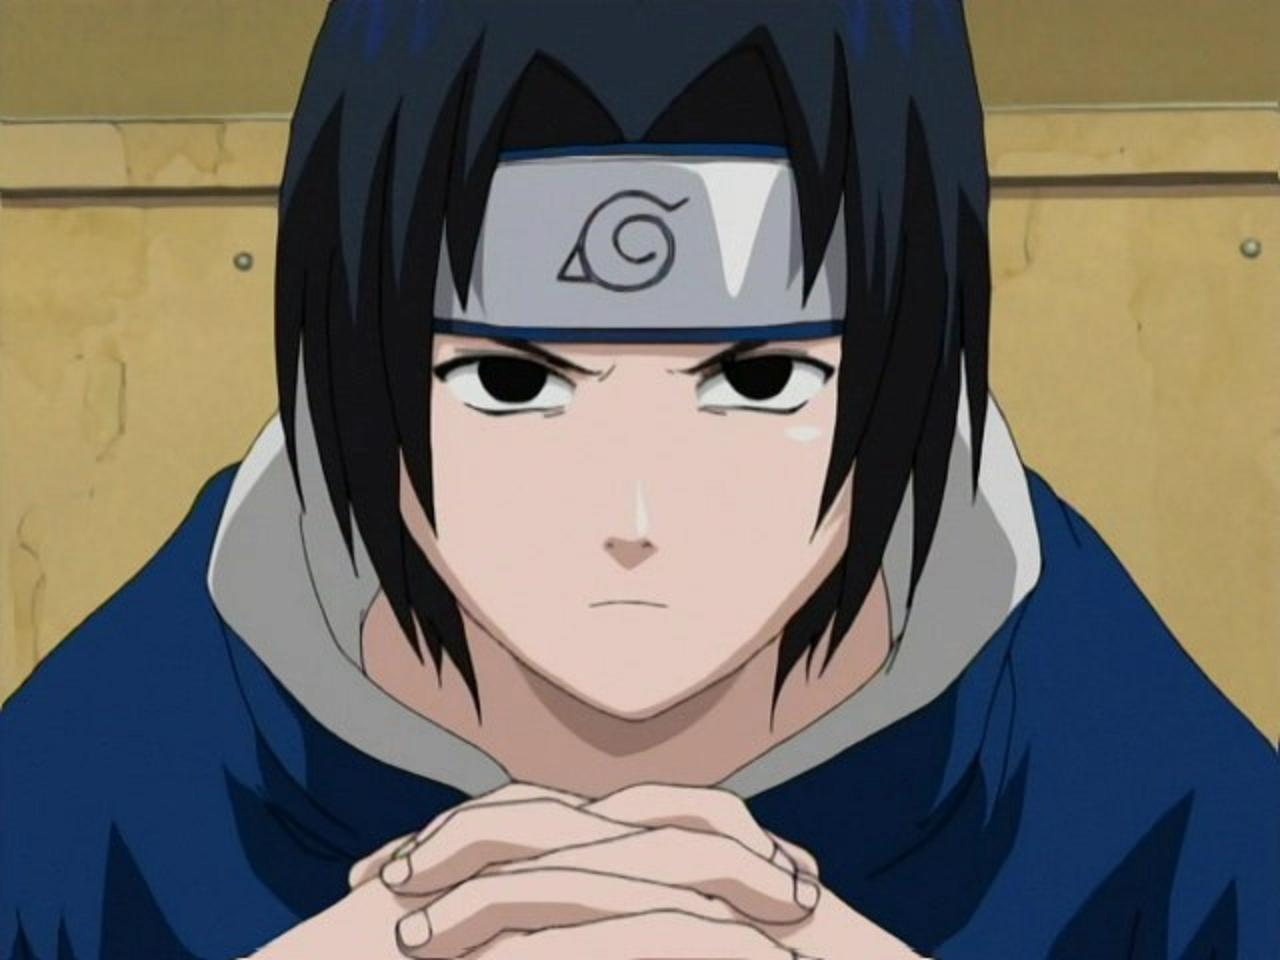 Naruto Sasuke Sex http://www.fanpop.com/clubs/naruto/images/28953000/title/sasuke-photo